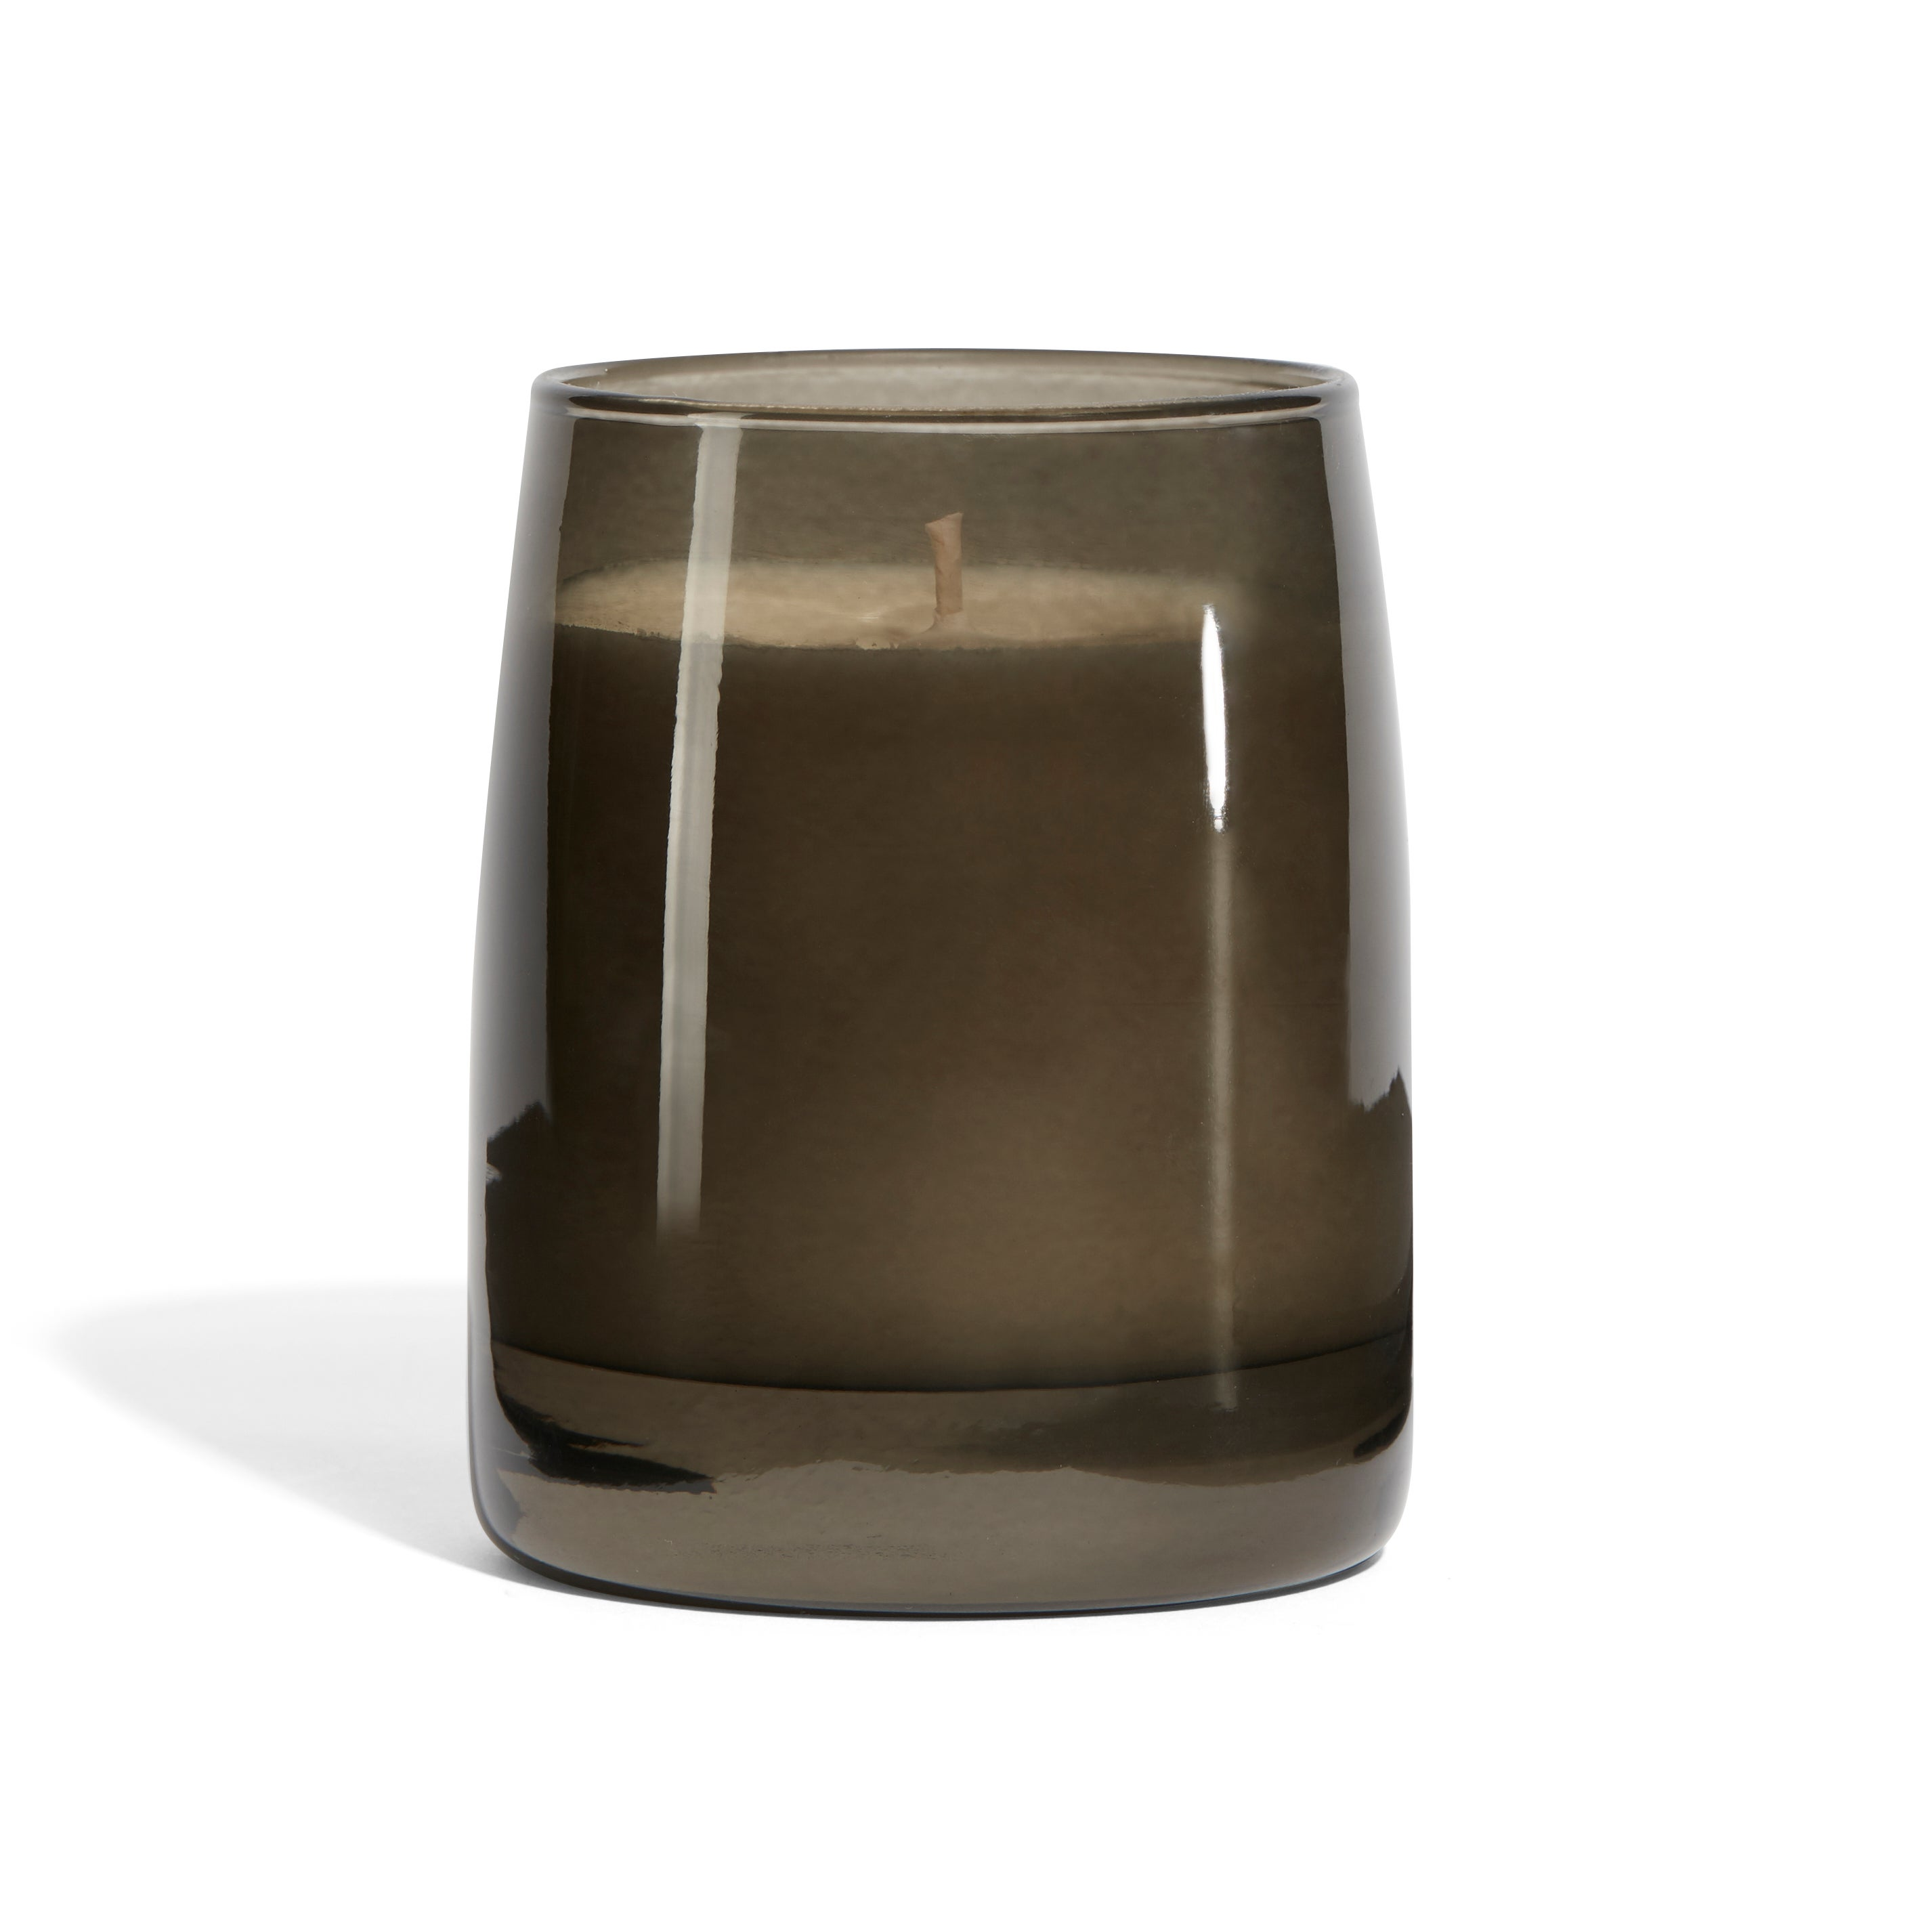 00058_2020-08-27-KH-Jeremiah Brent-candle-front-2